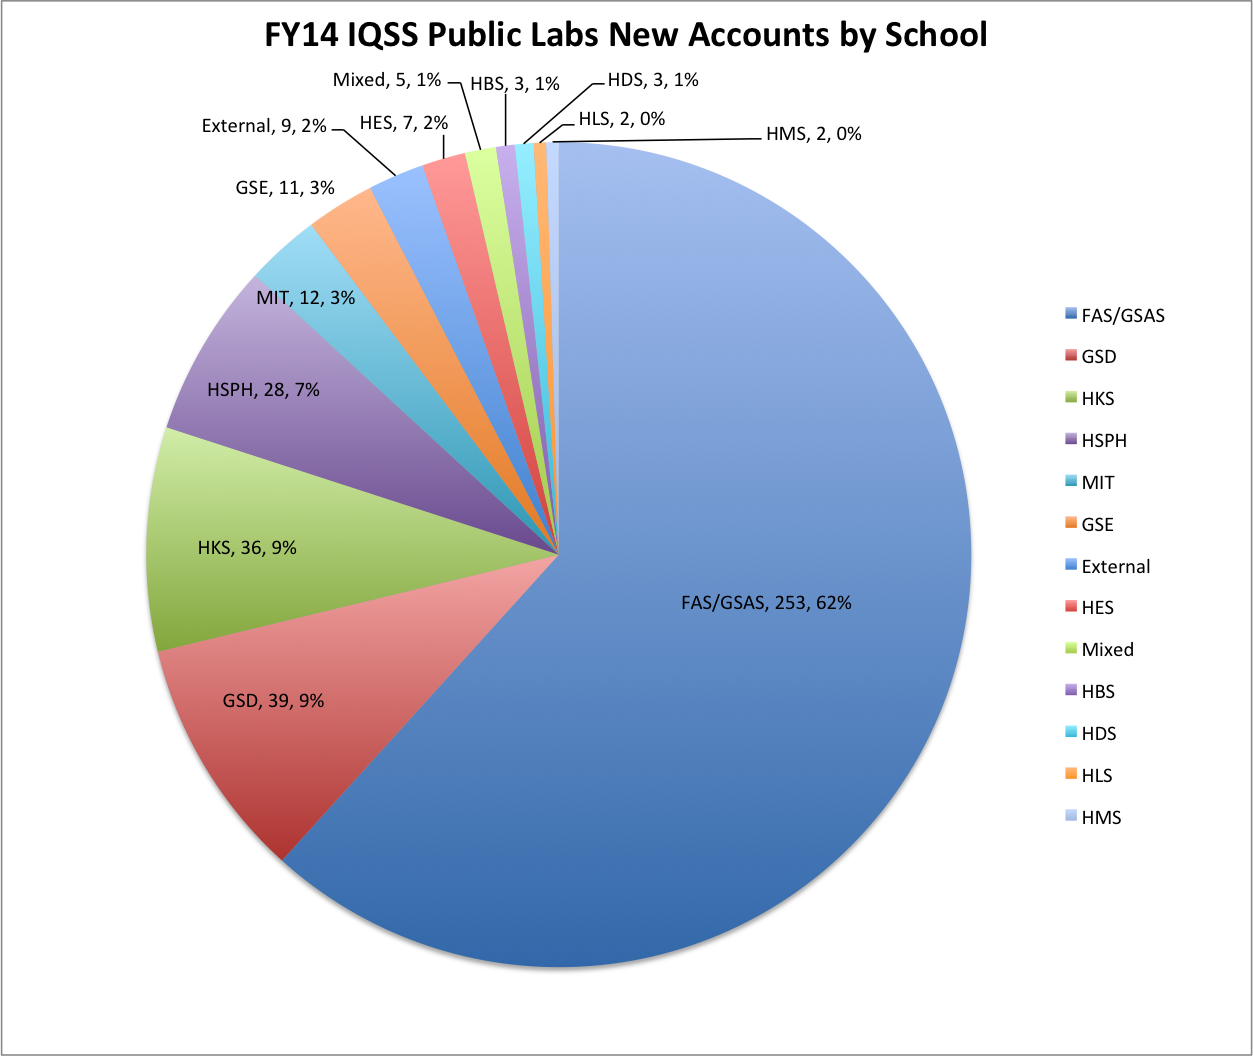 IQSS/HMDC Public Lbs New Accounts FY14